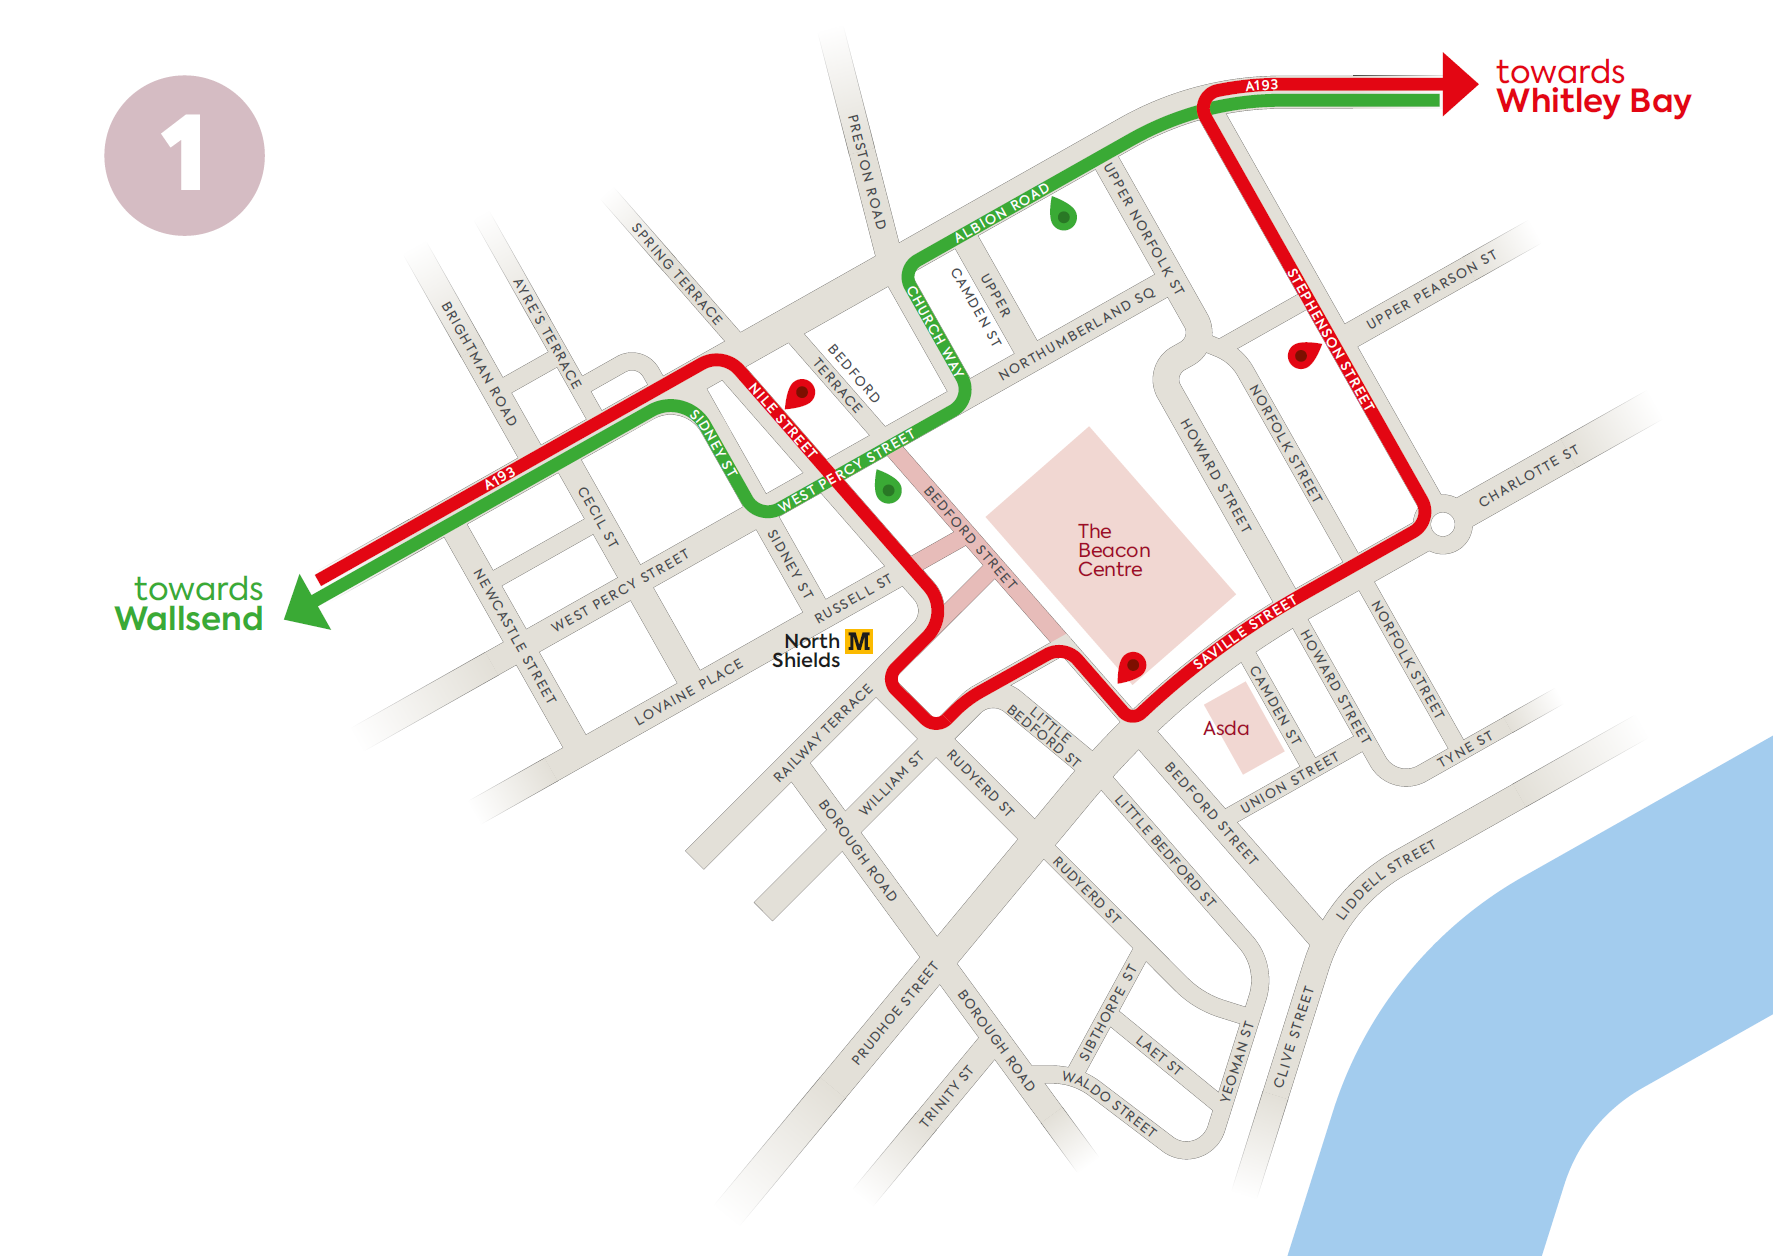 North Shields - Coaster 1 route change